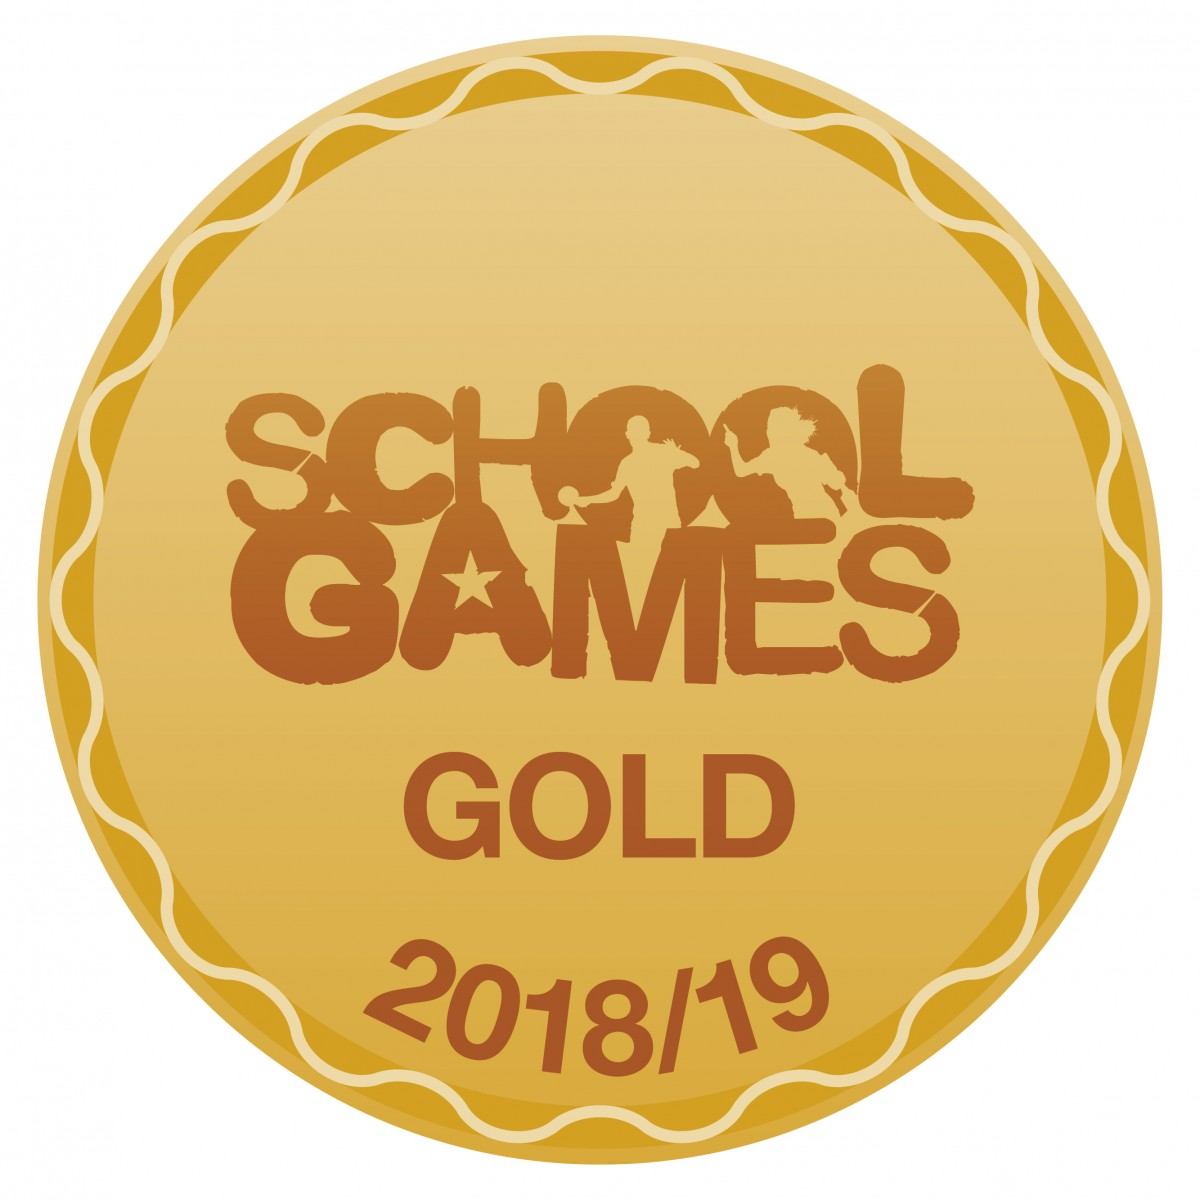 School Games Gold Mark Award for the 2018/19 – St Aidan's Catholic Primary  School